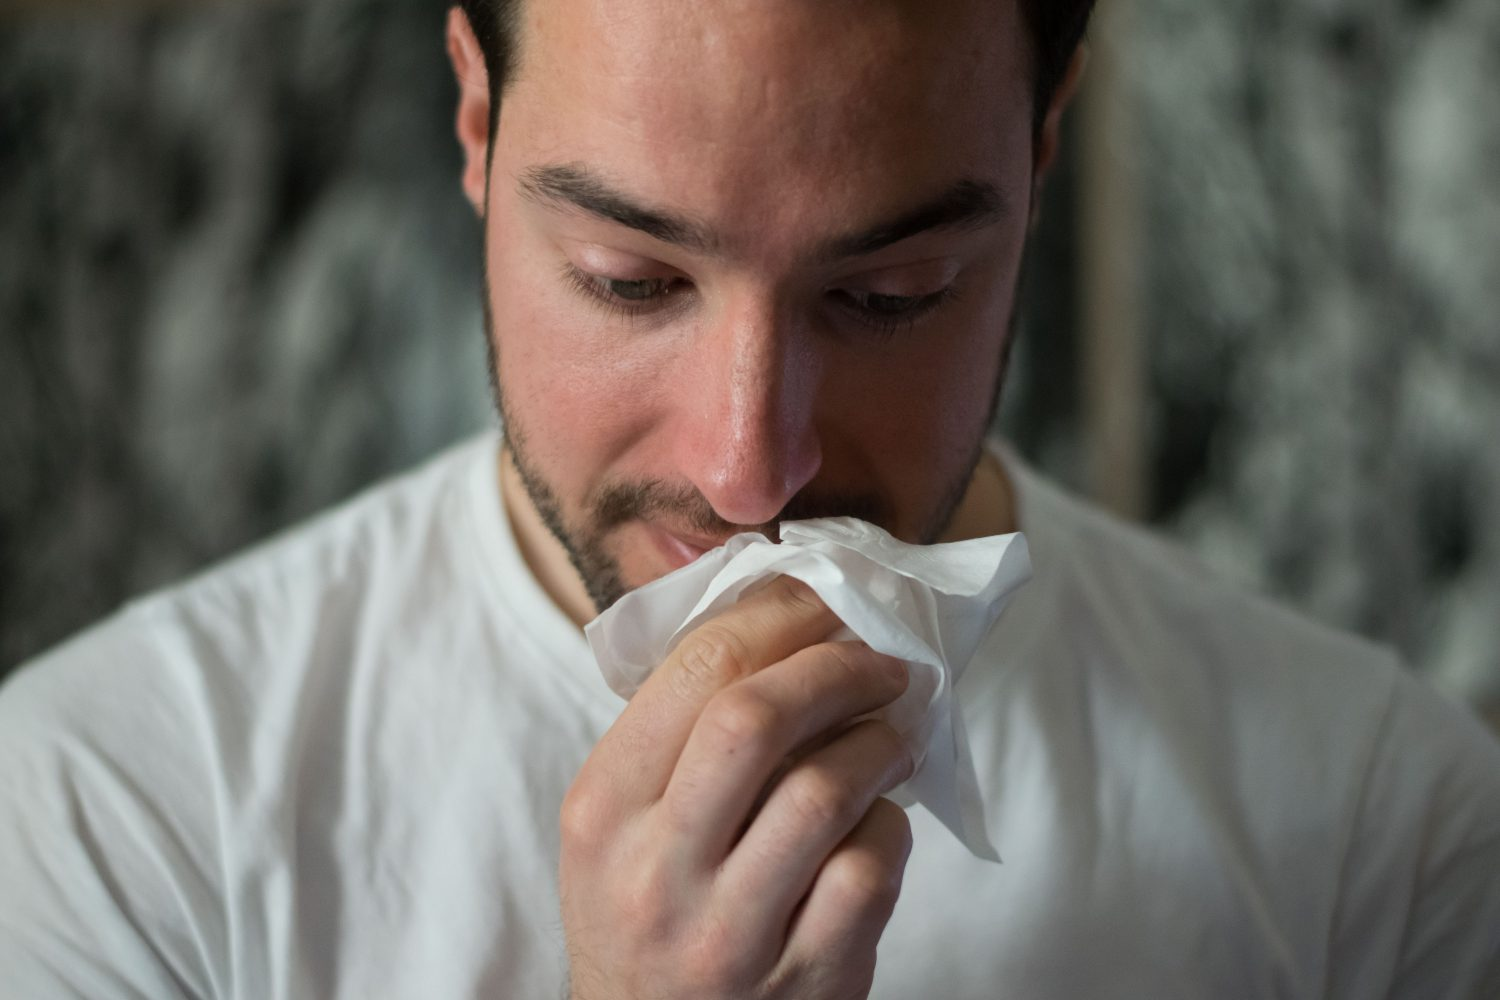 treatment options for chronic nasal congestion